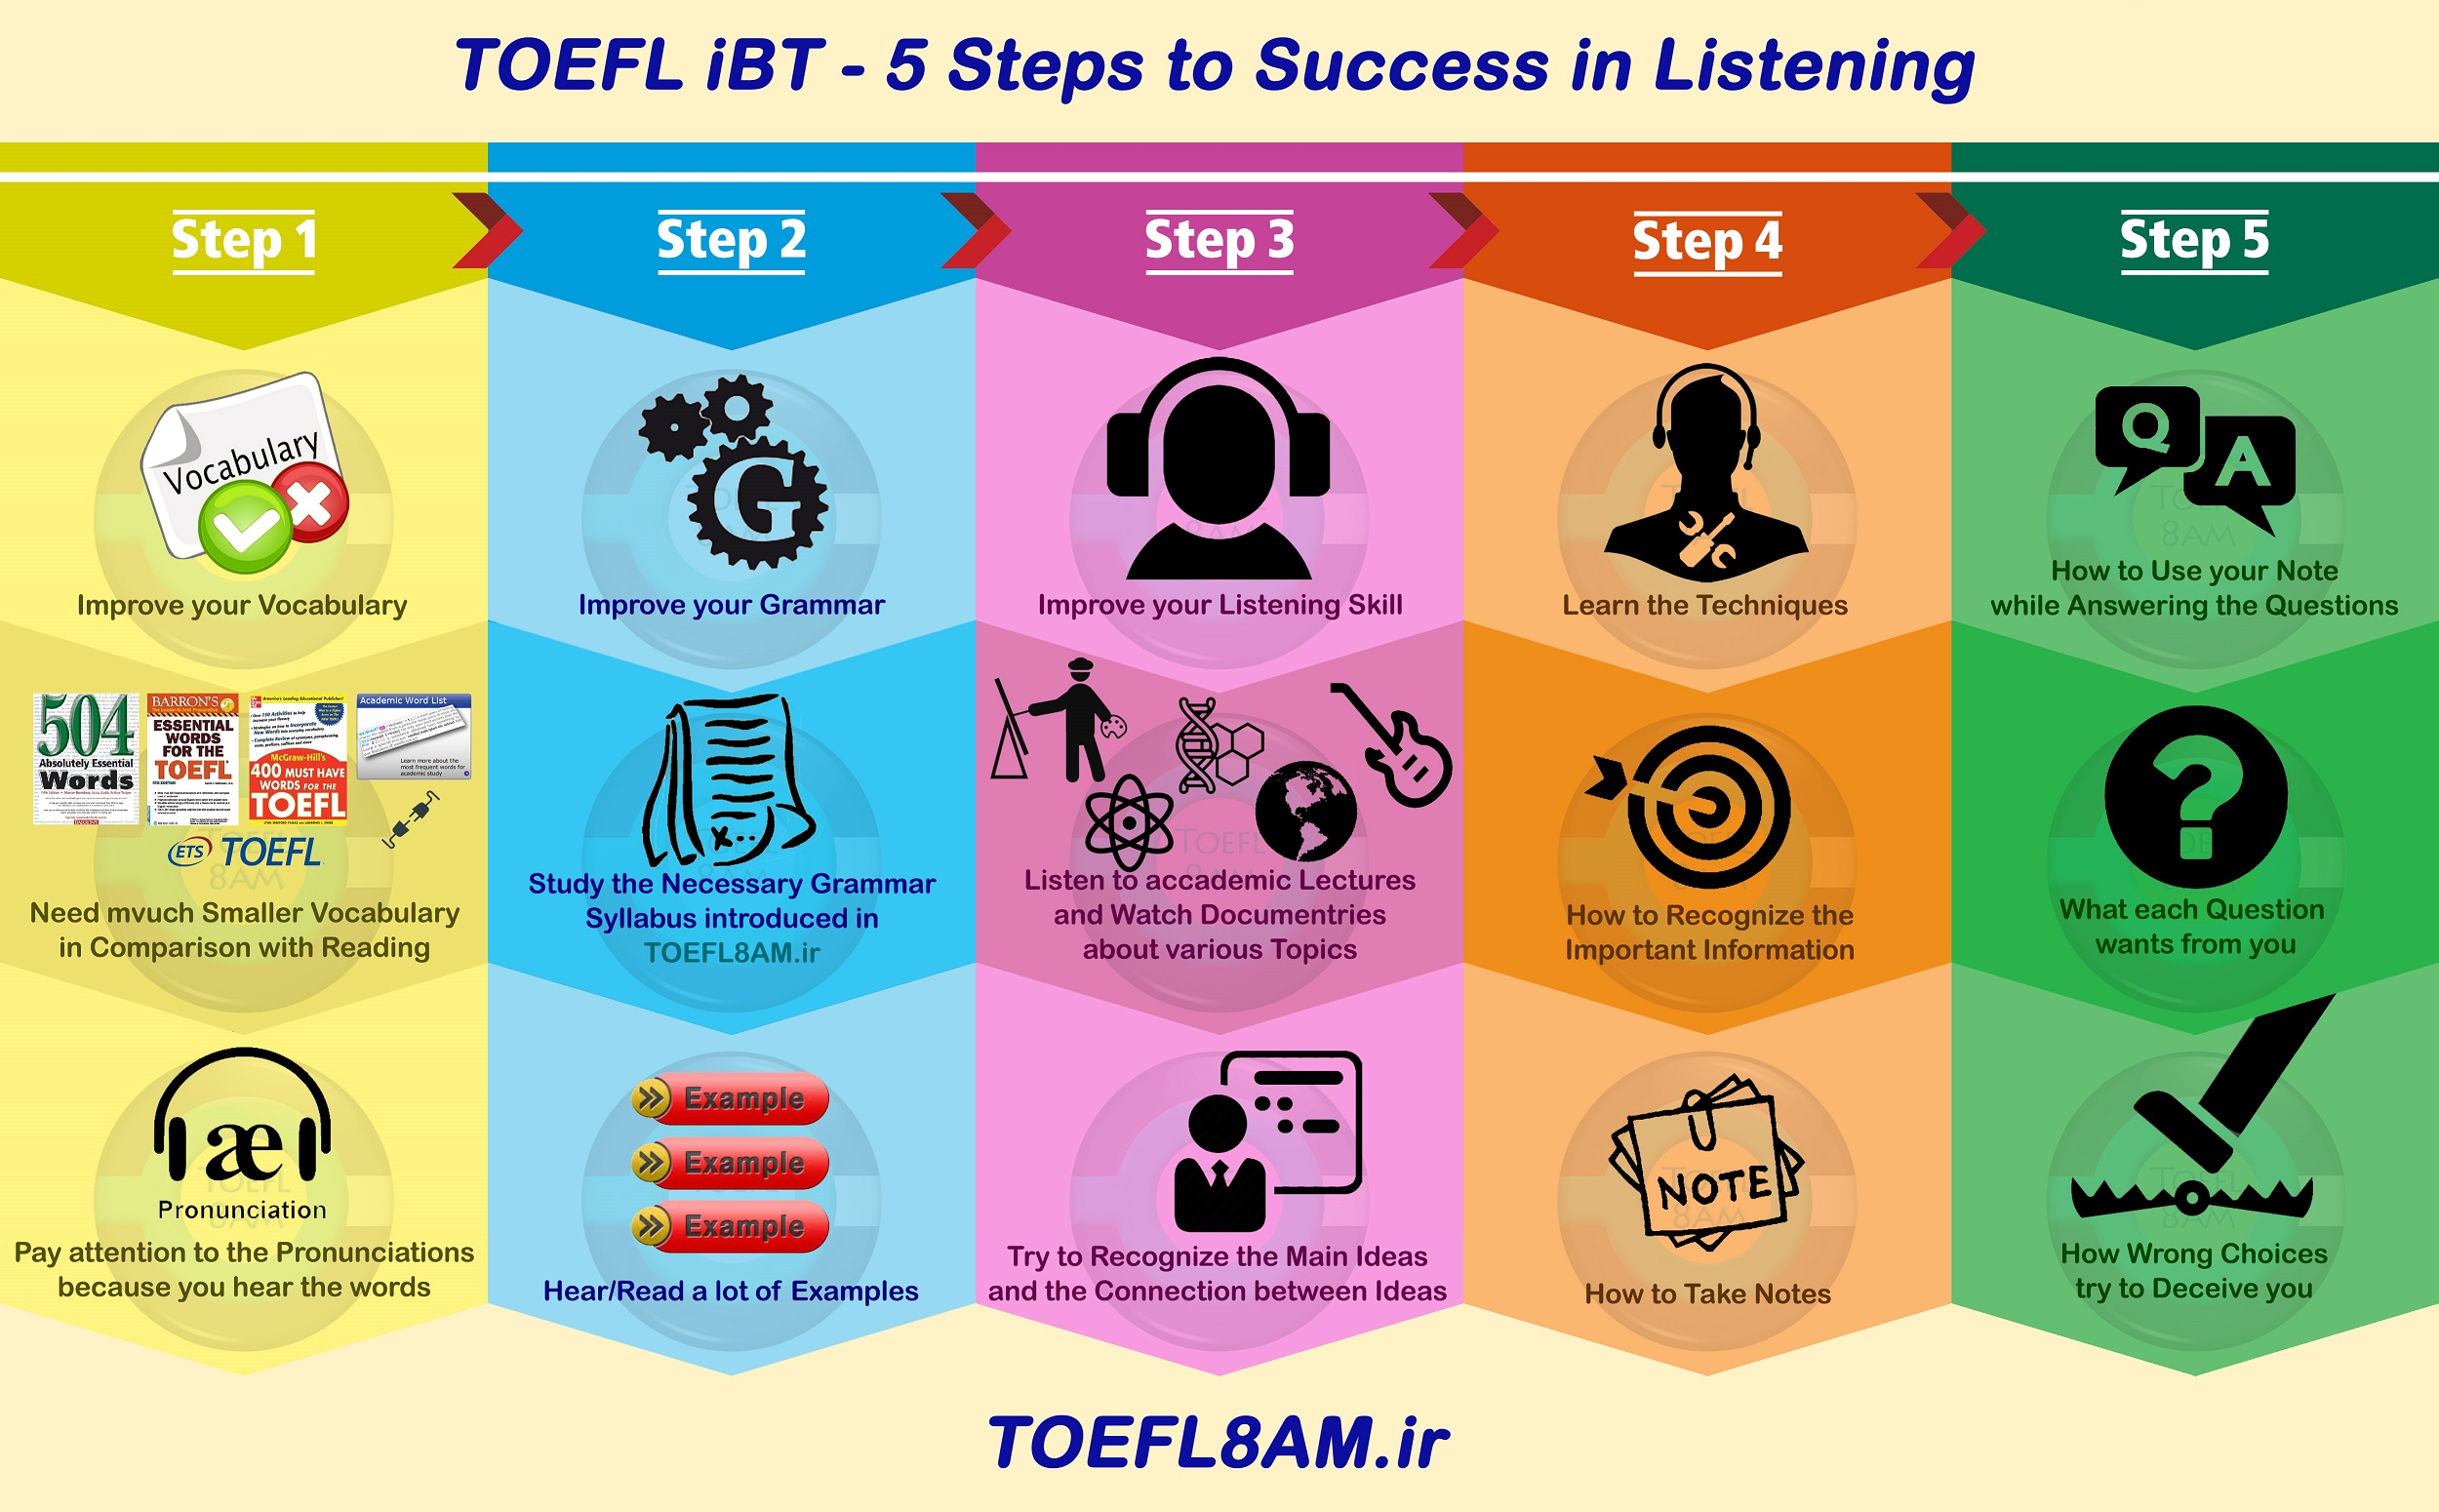 5 steps to success in TOEFL iBT Listening